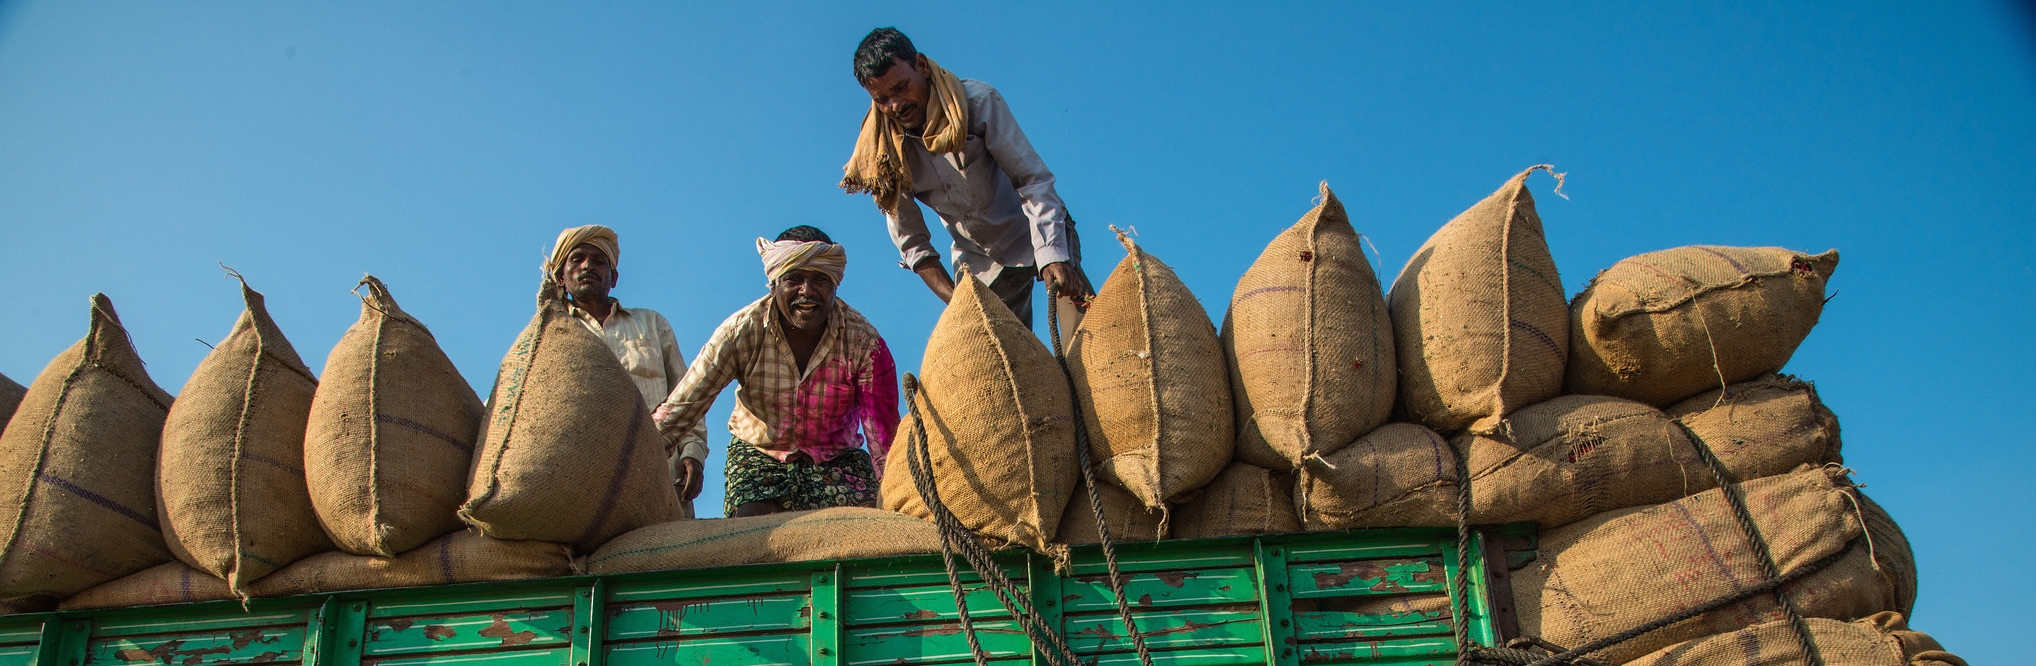 Farmers were unable to sell there produce for a good price because of the lack of cash after demonetisation. Representative image credit: Asian Development Bank/Flickr CC BY-NC-ND 2.0